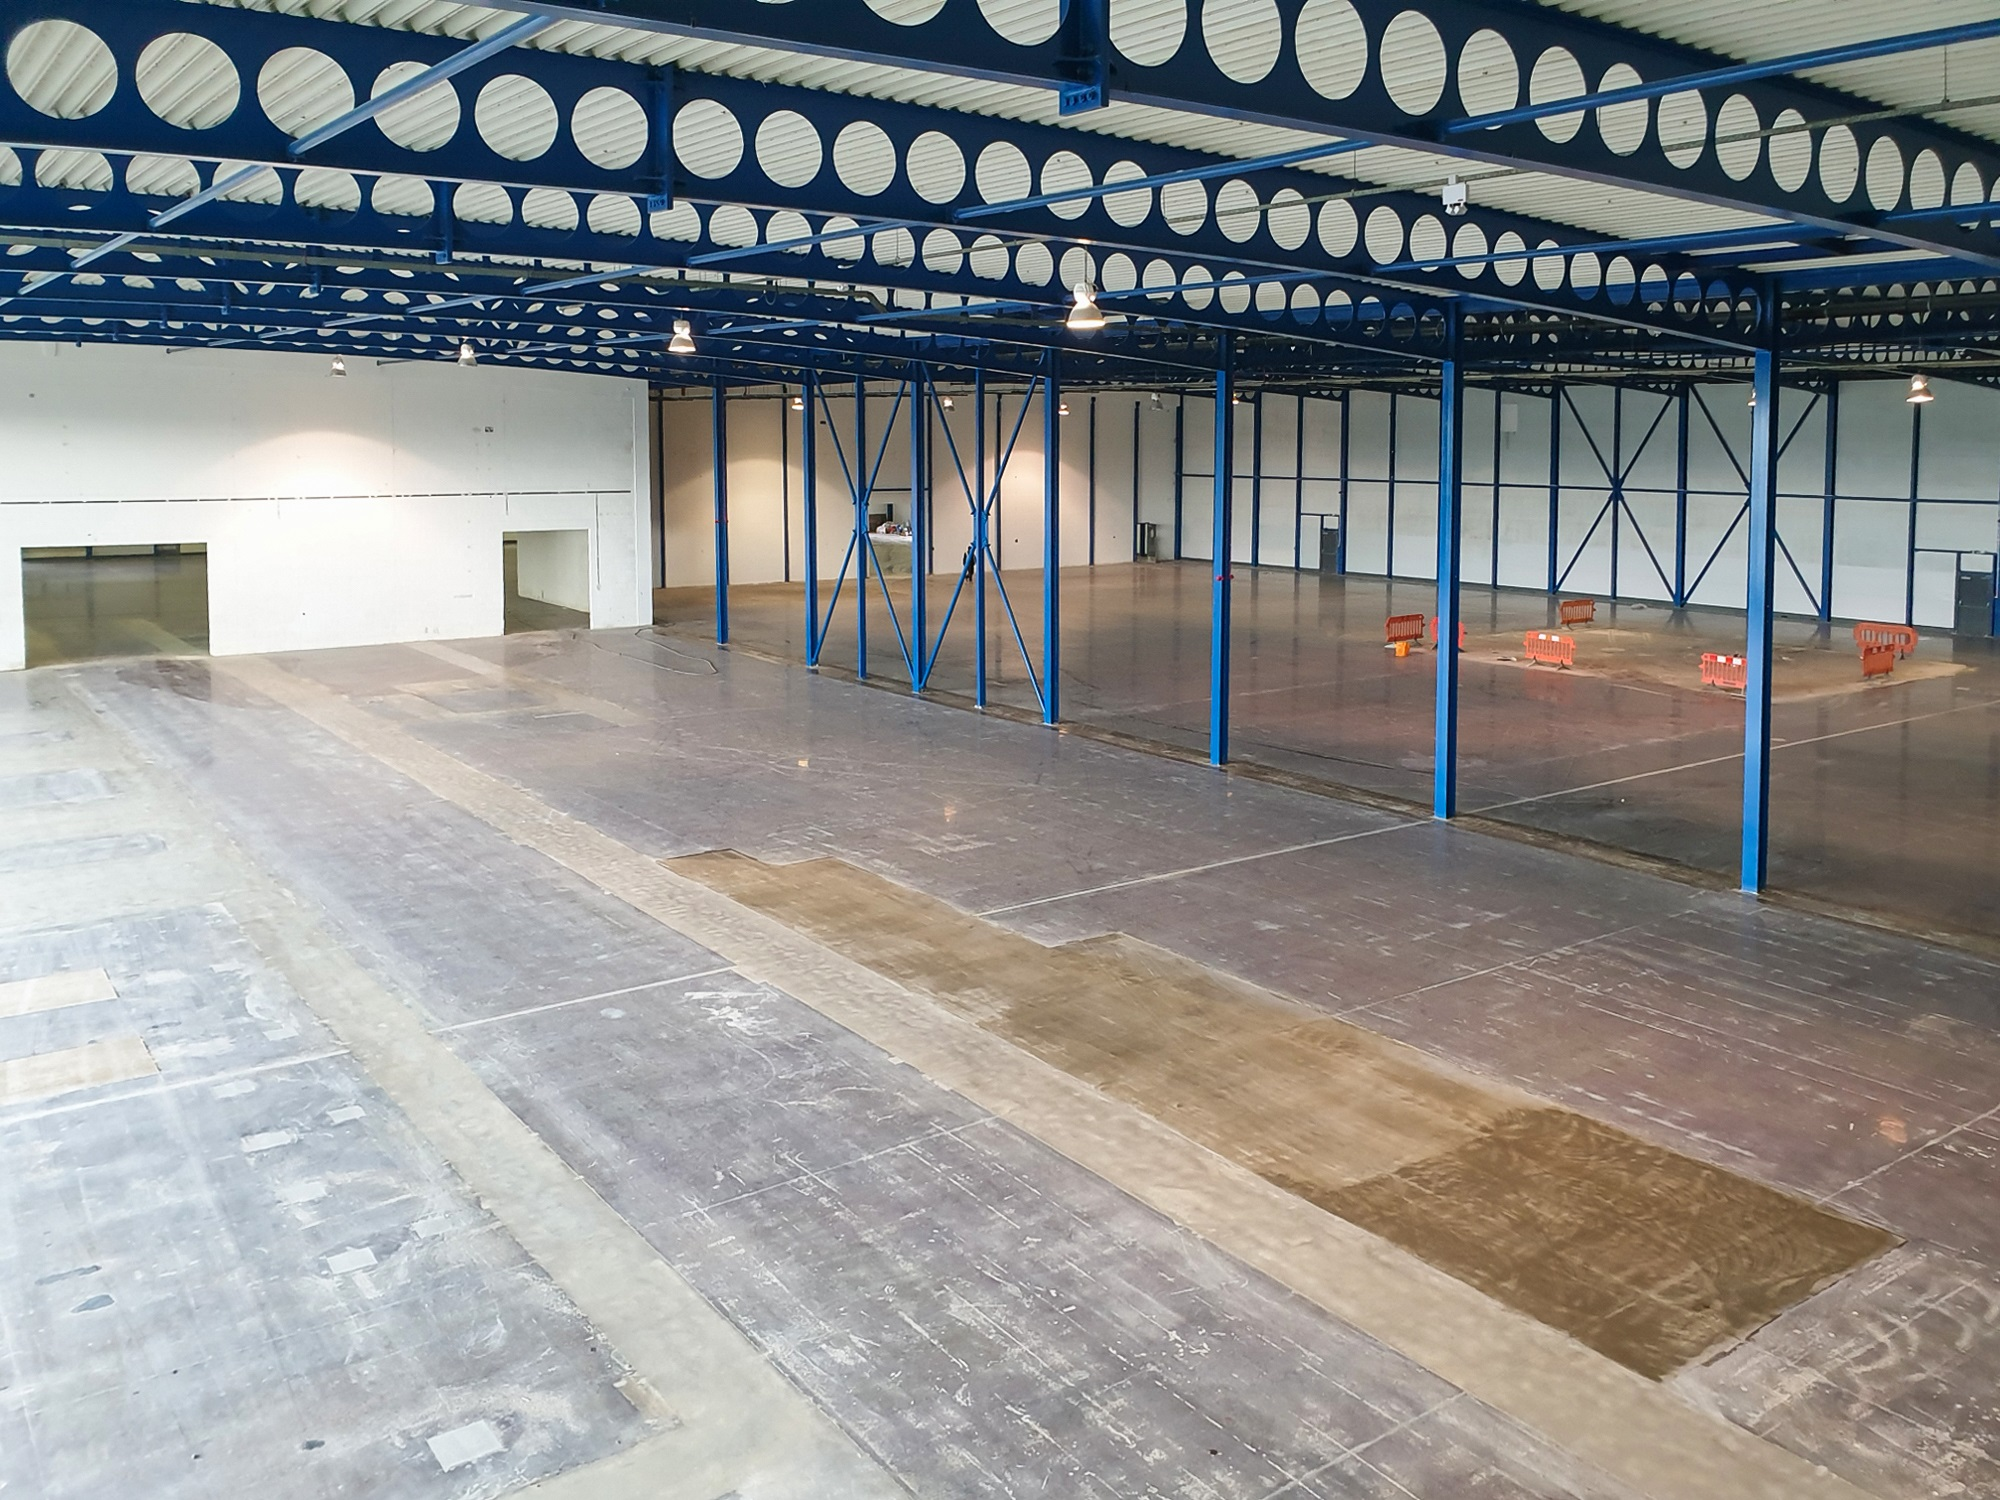 refurb warehouse with blue structure